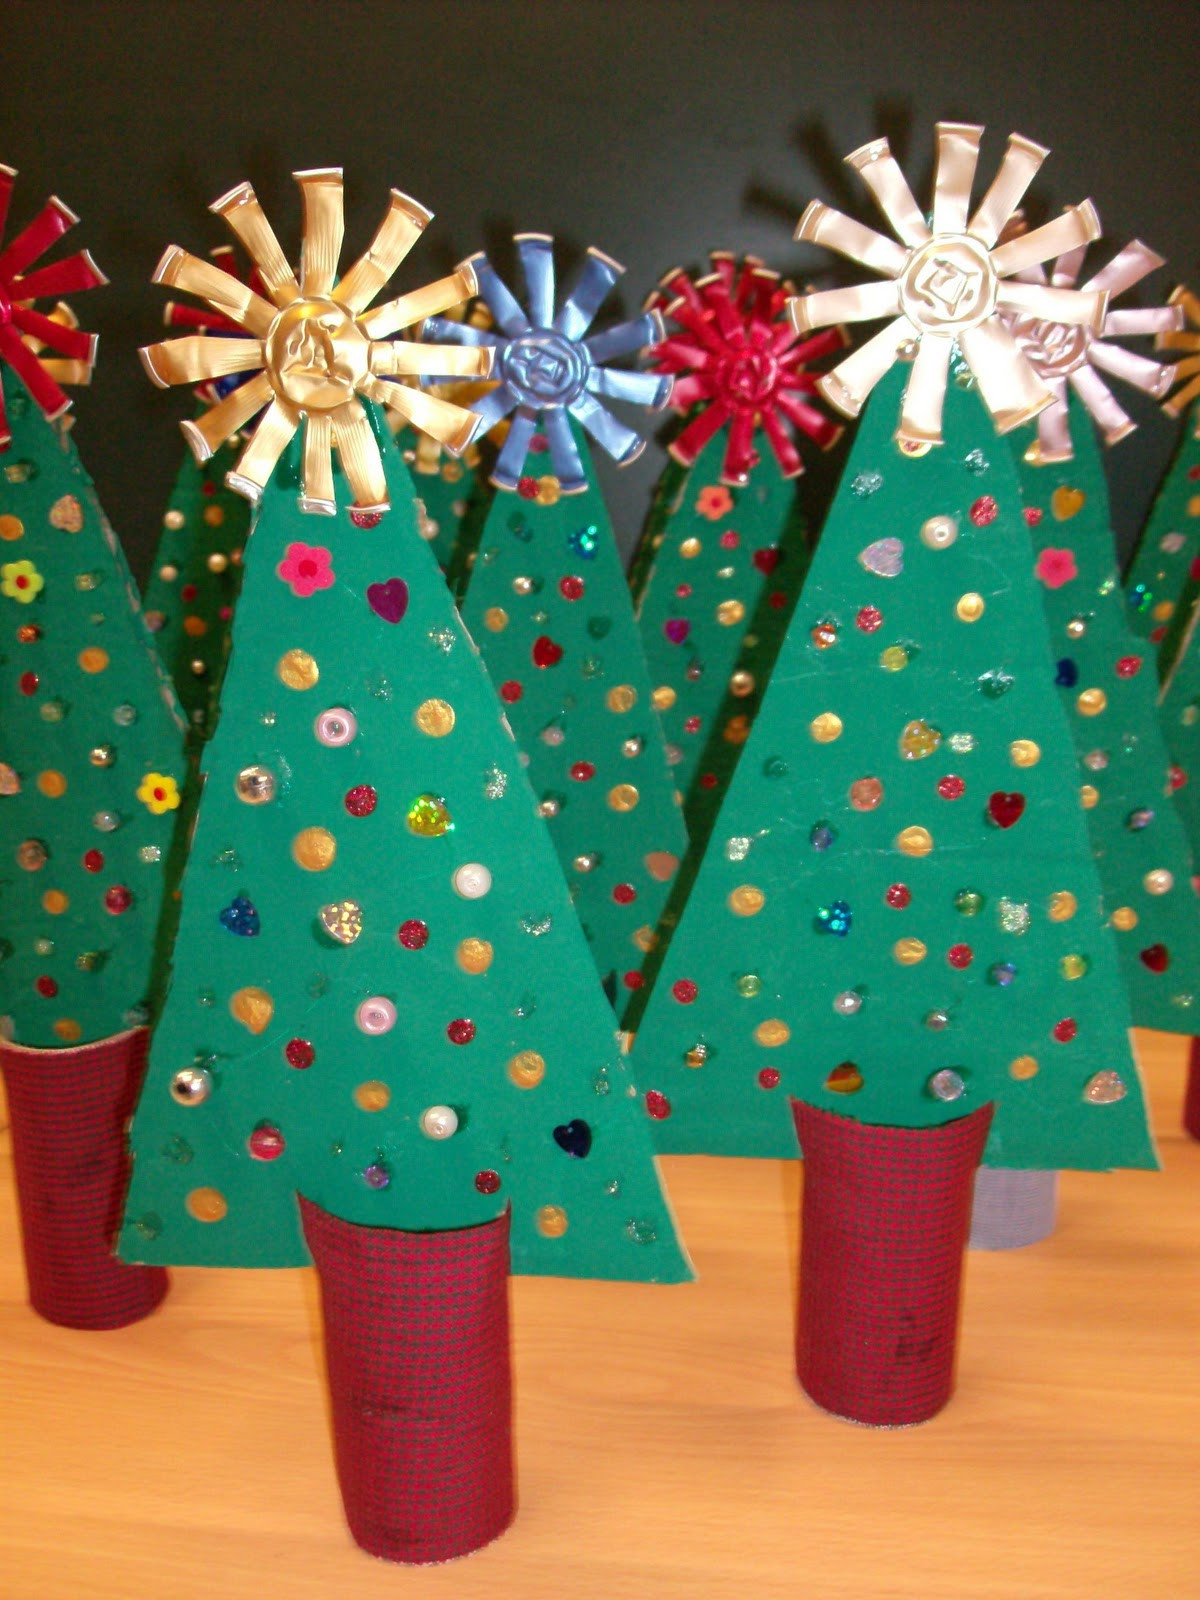 Christmas Paper Crafts Elegant Christmas Paper Craft Ideas Paper Crafts Of Adorable 49 Pictures Christmas Paper Crafts